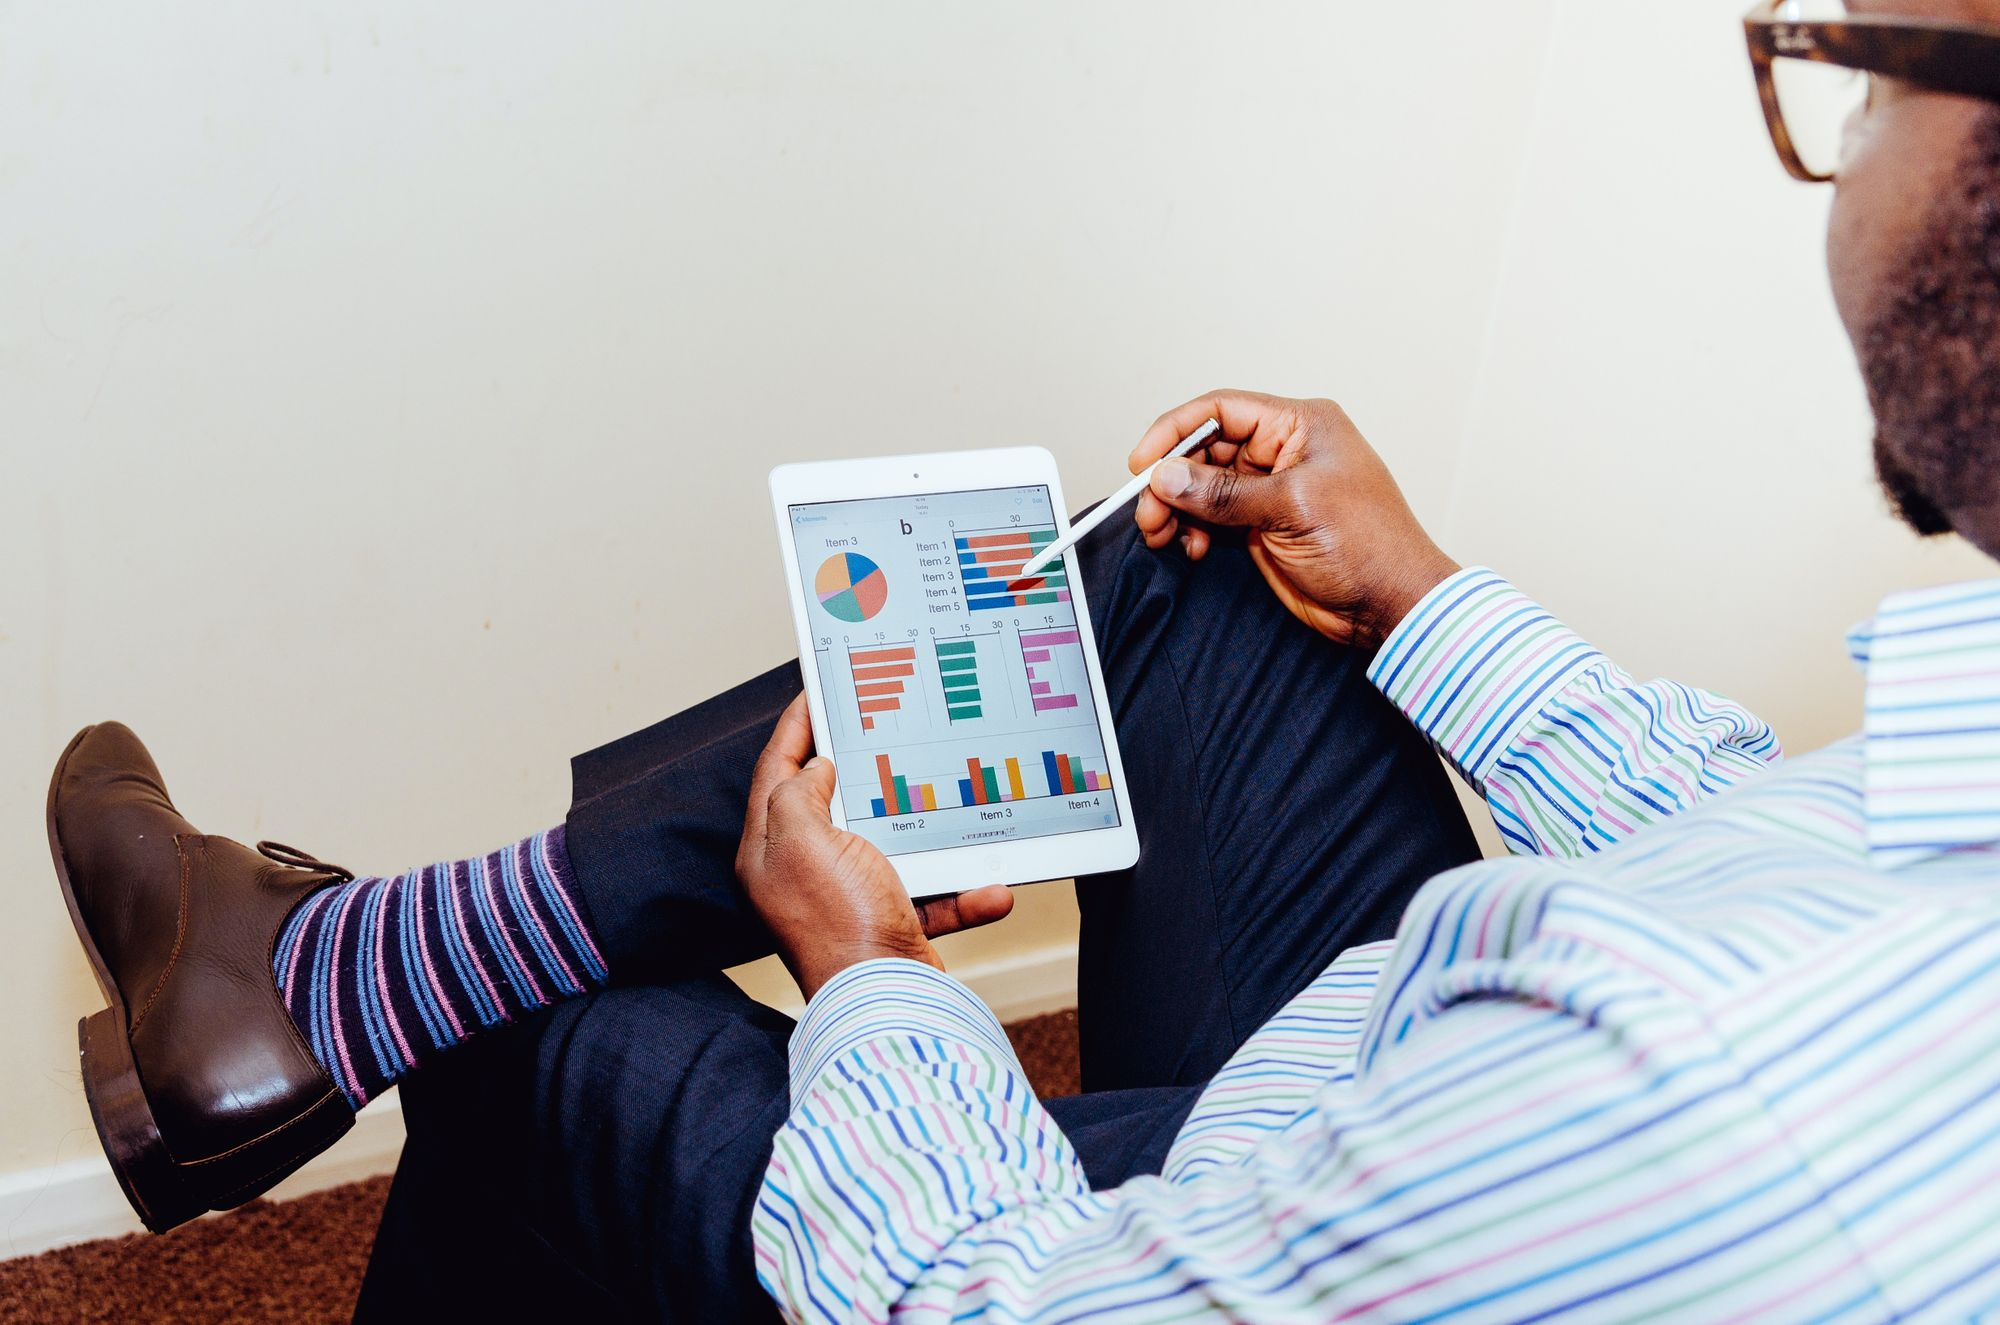 A man in striped socks, loafers, slacks, and a button down shirt reviewing analytical data on a tablet.